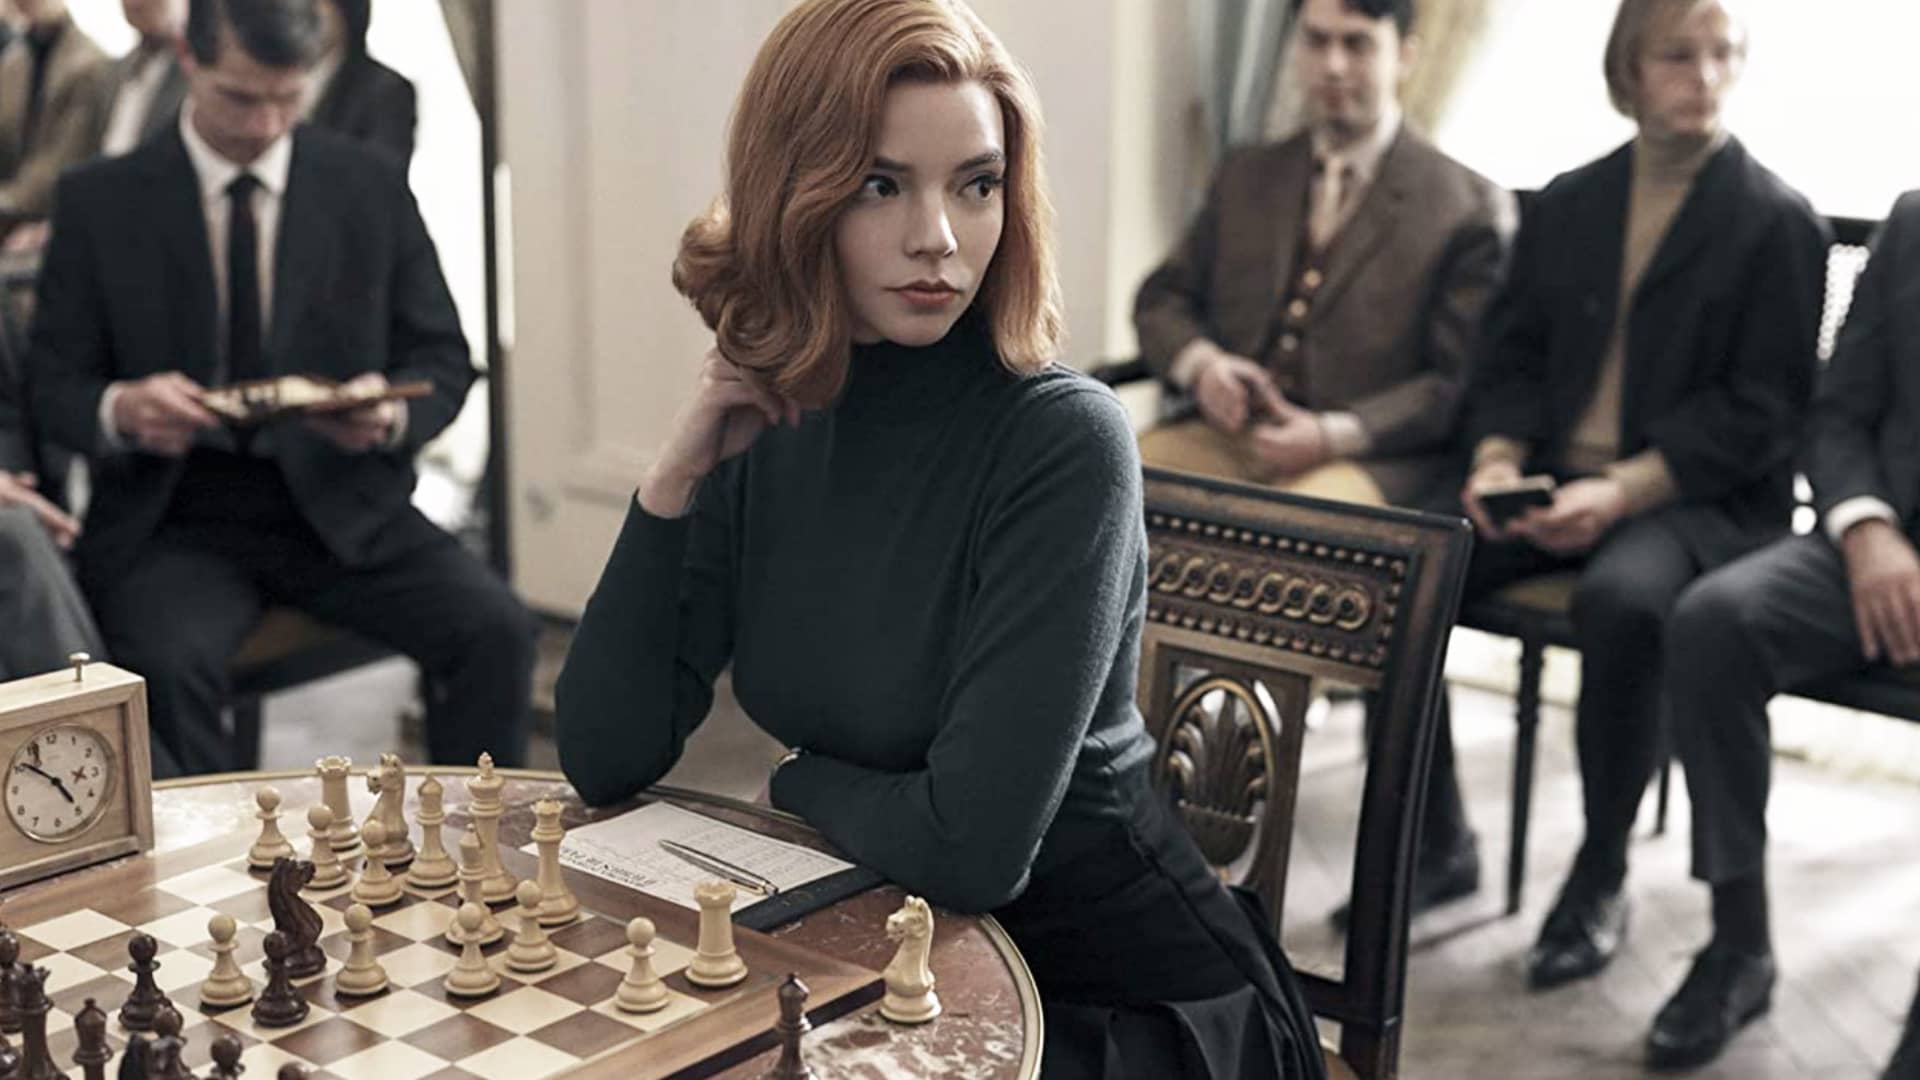 Anya Taylor-Joy in The Queen's Gambit